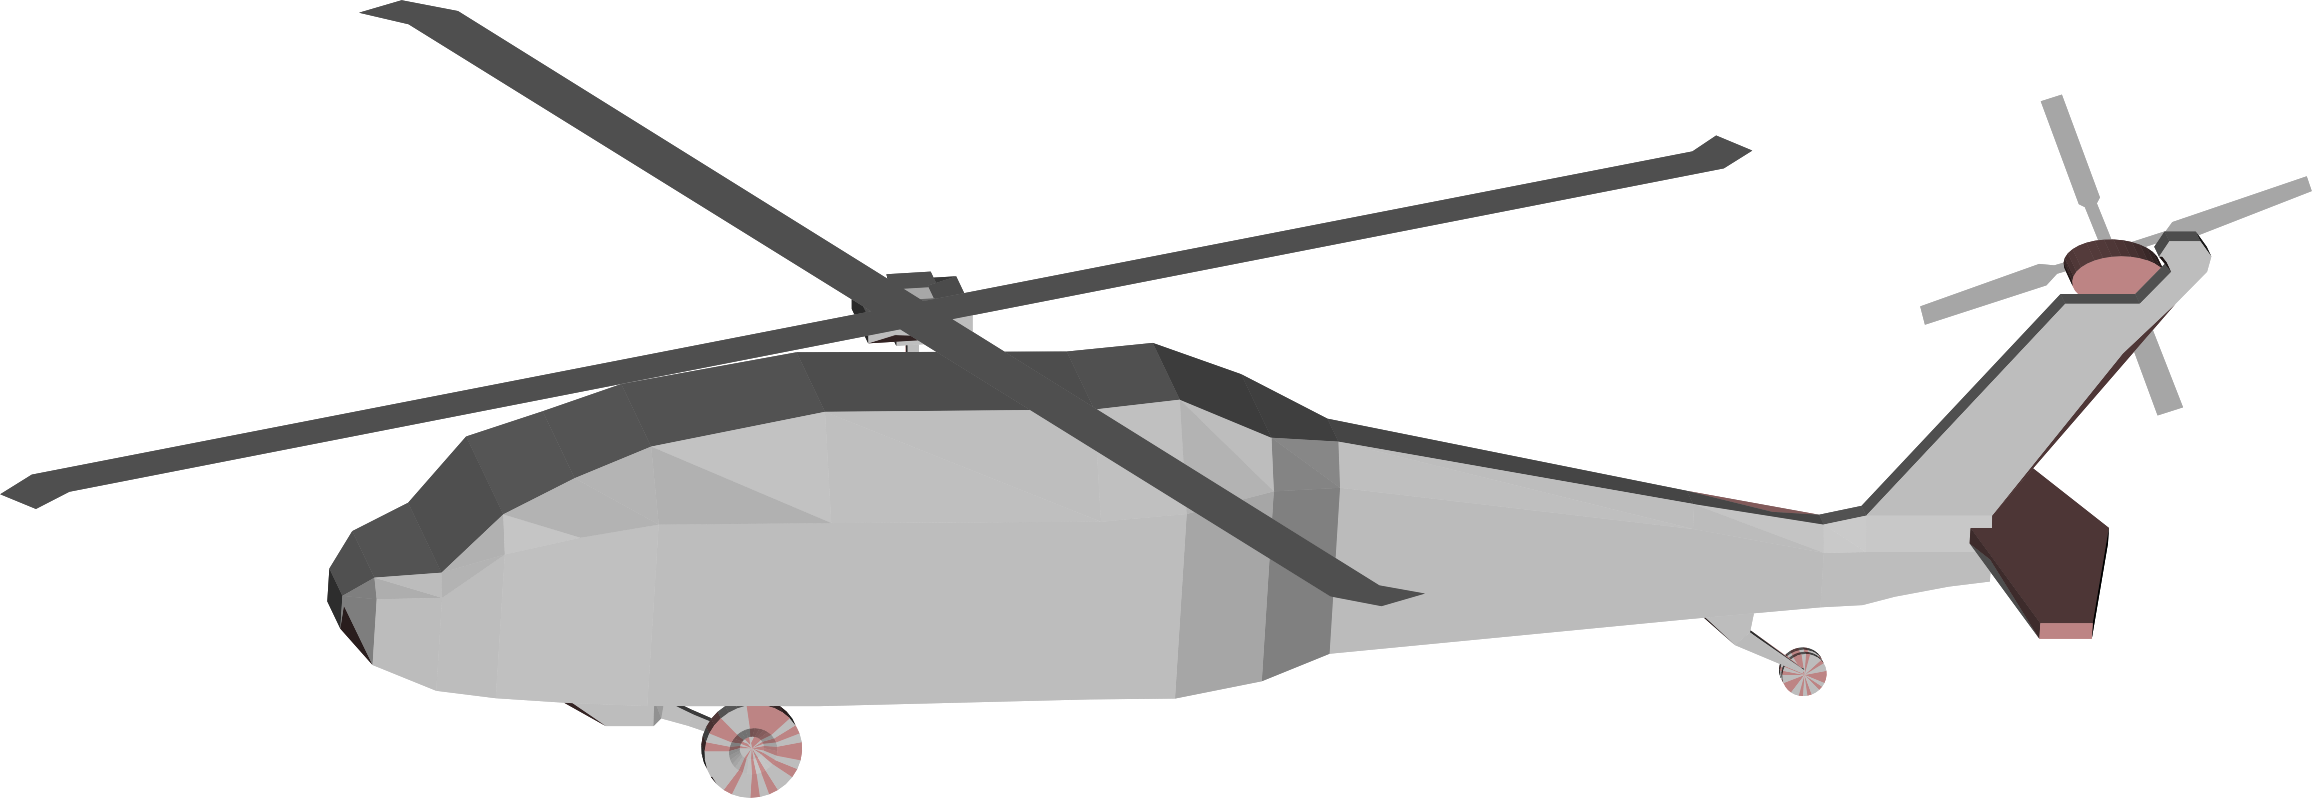 d low poly. Helicopter clipart flying machine